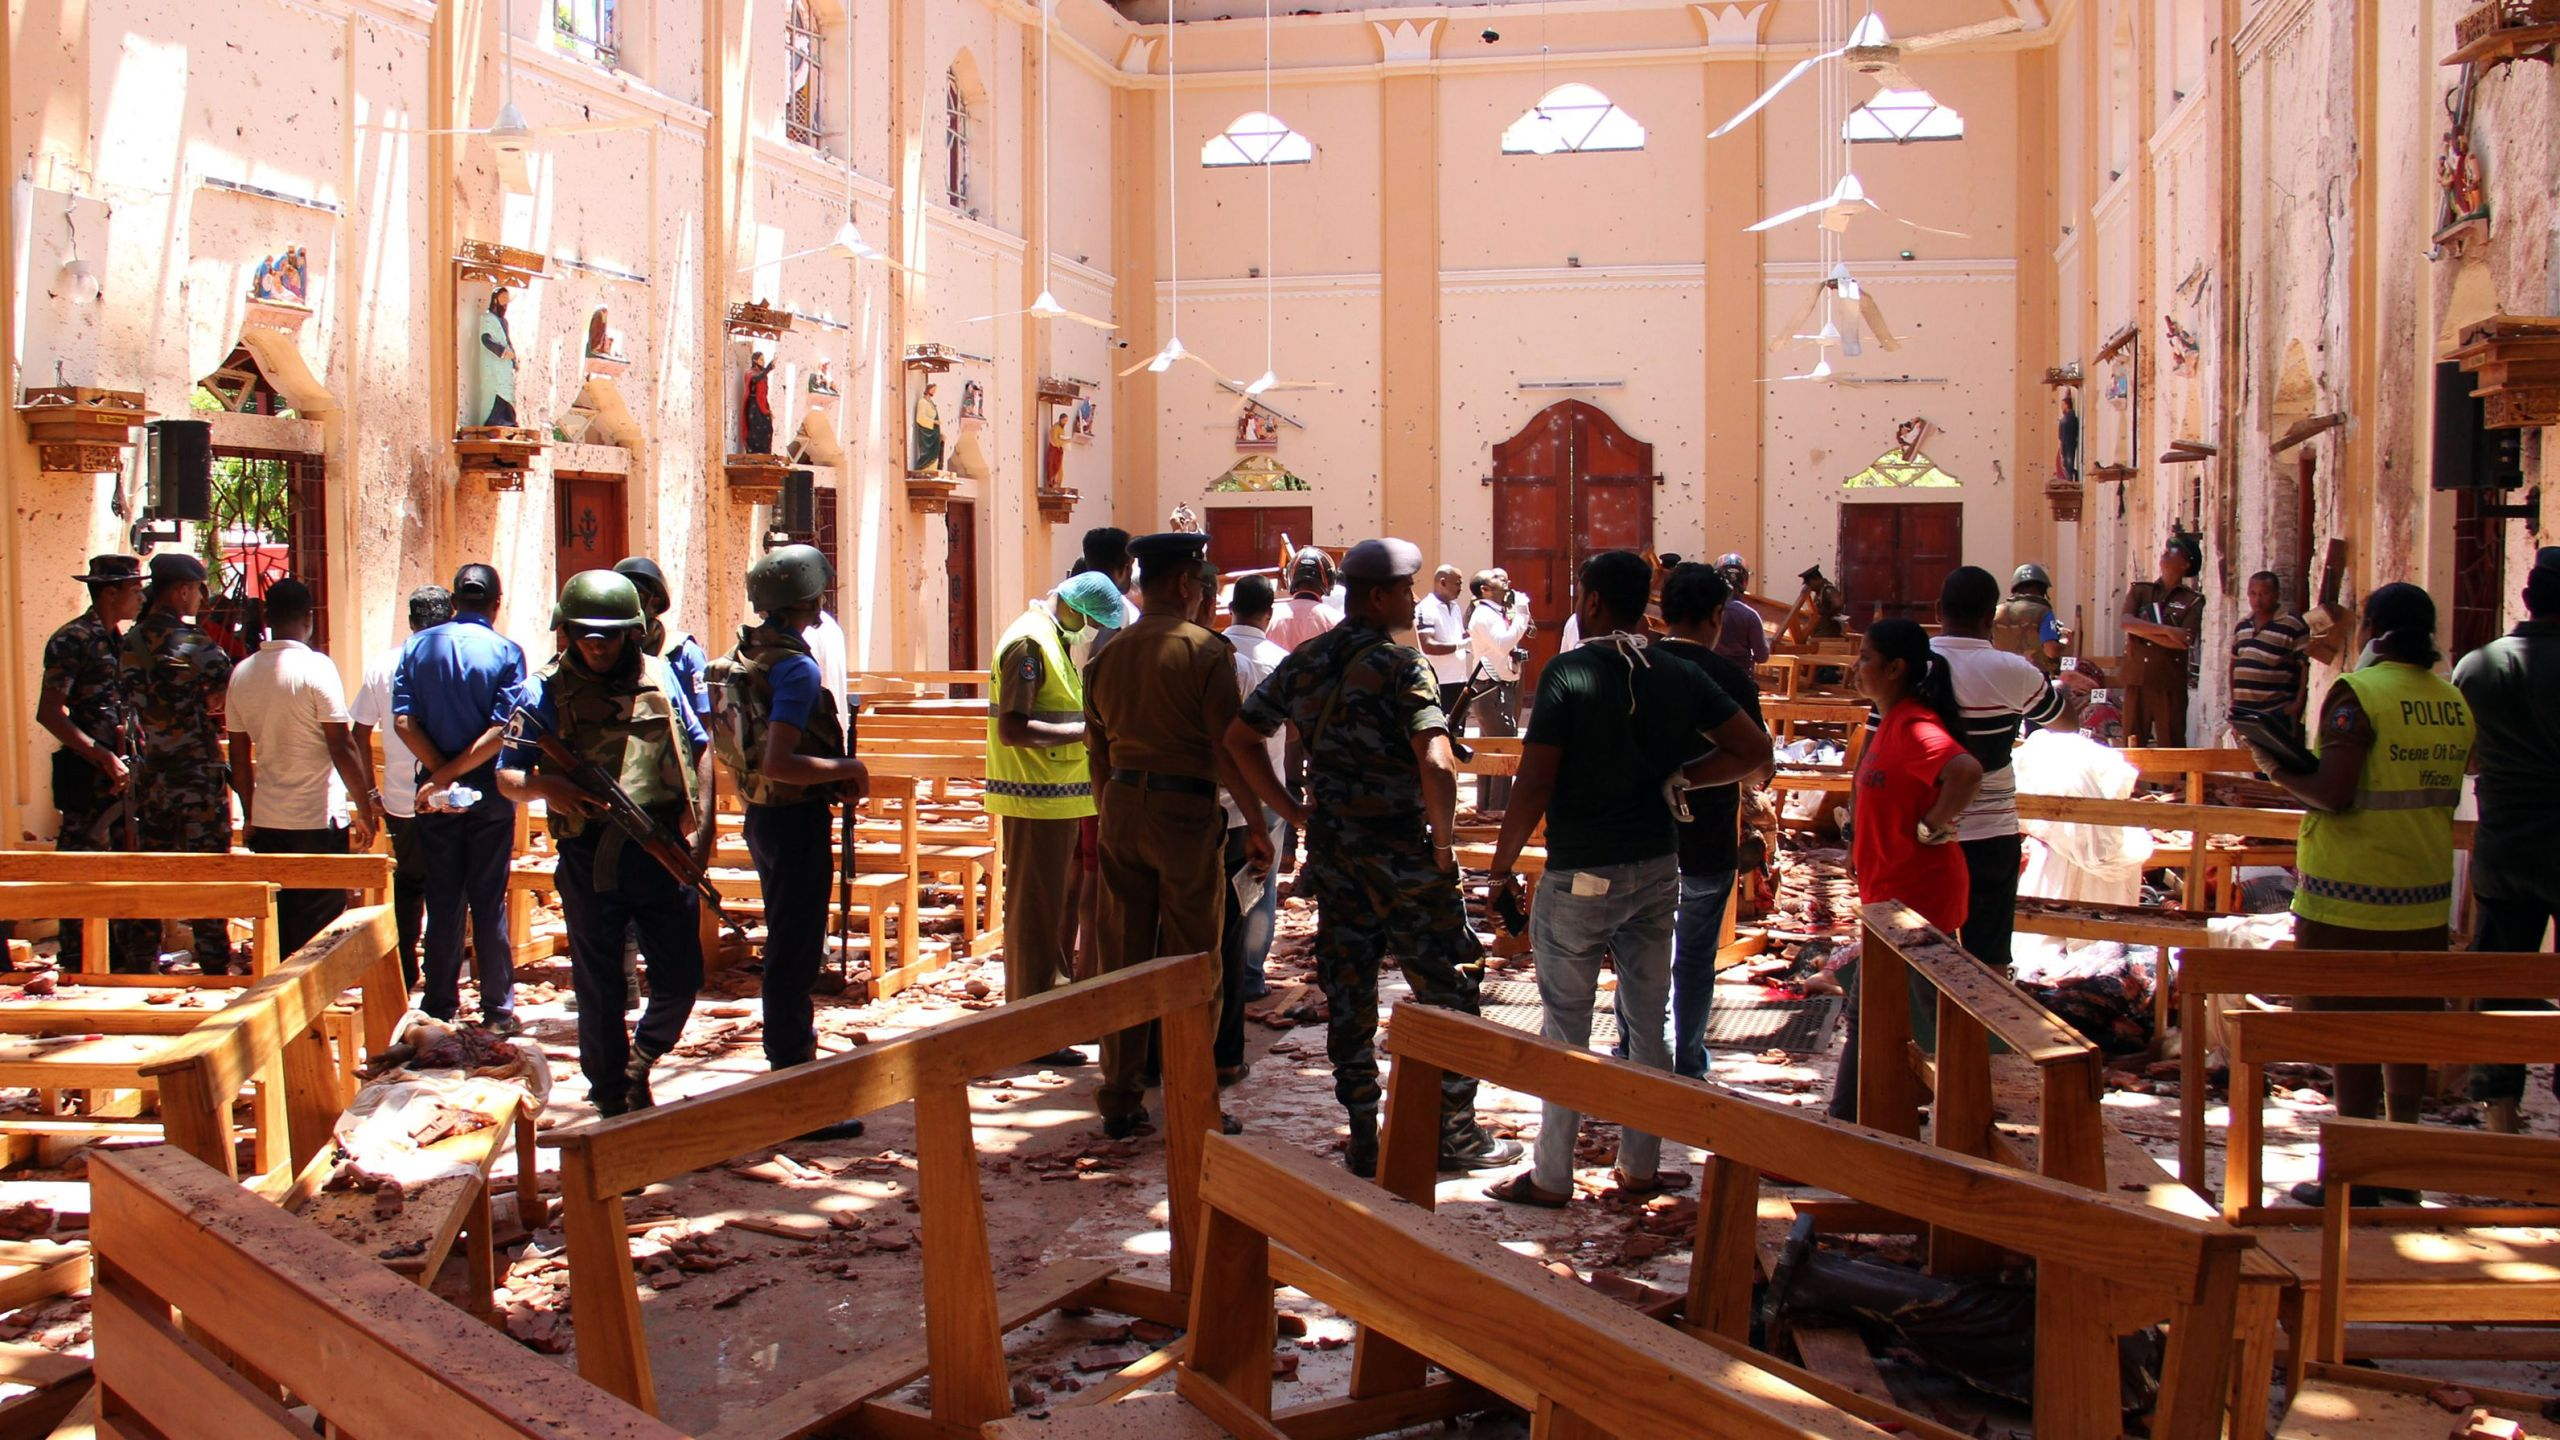 Sri Lankan security personnel walk through debris following an explosion in St. Sebastian's Church in Negombo, north of the capital Colombo, on April 21, 2019. (Credit: STR/AFP/Getty Images)